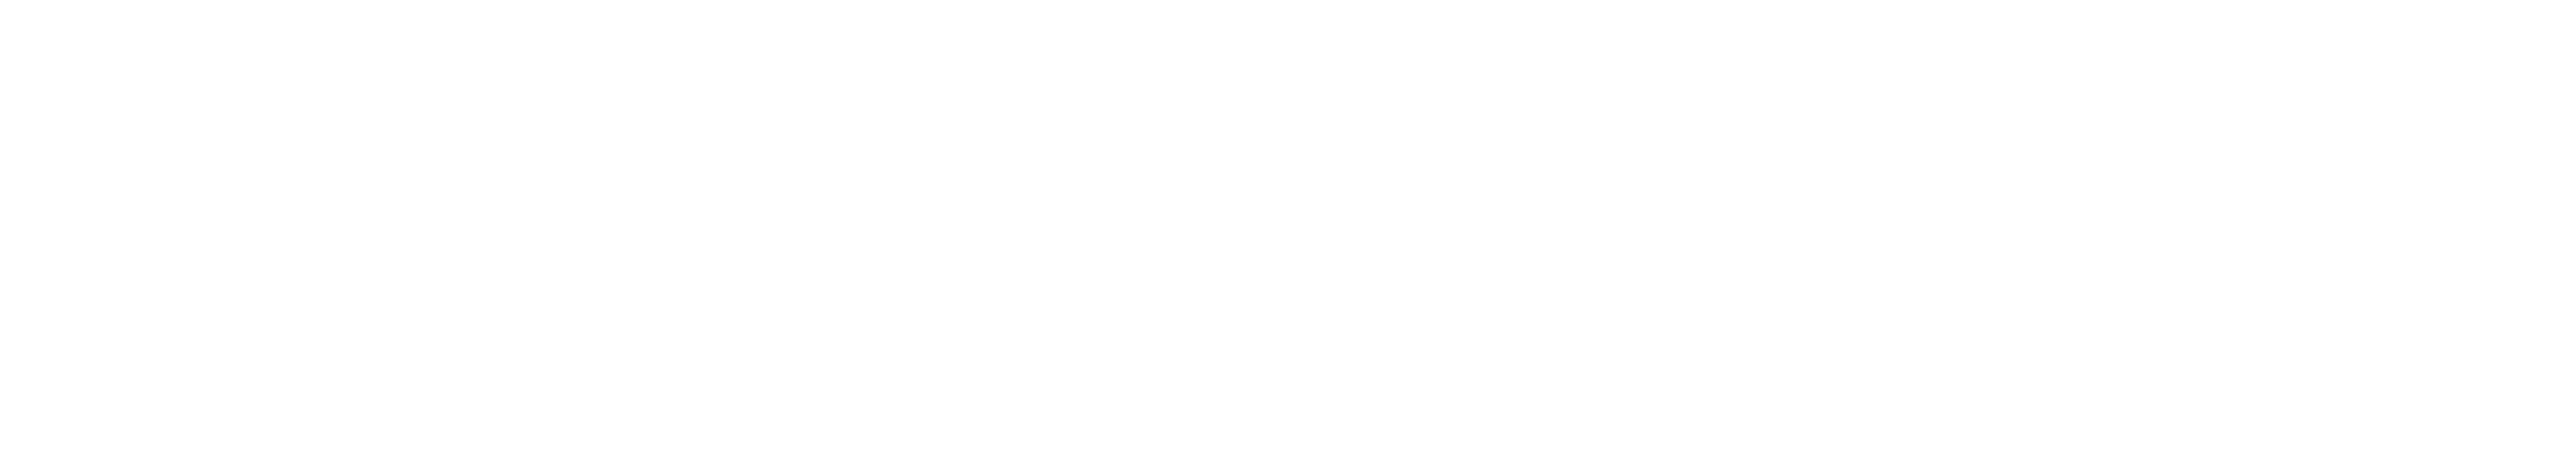 QuickMedical - Medical Equipment and Supplies